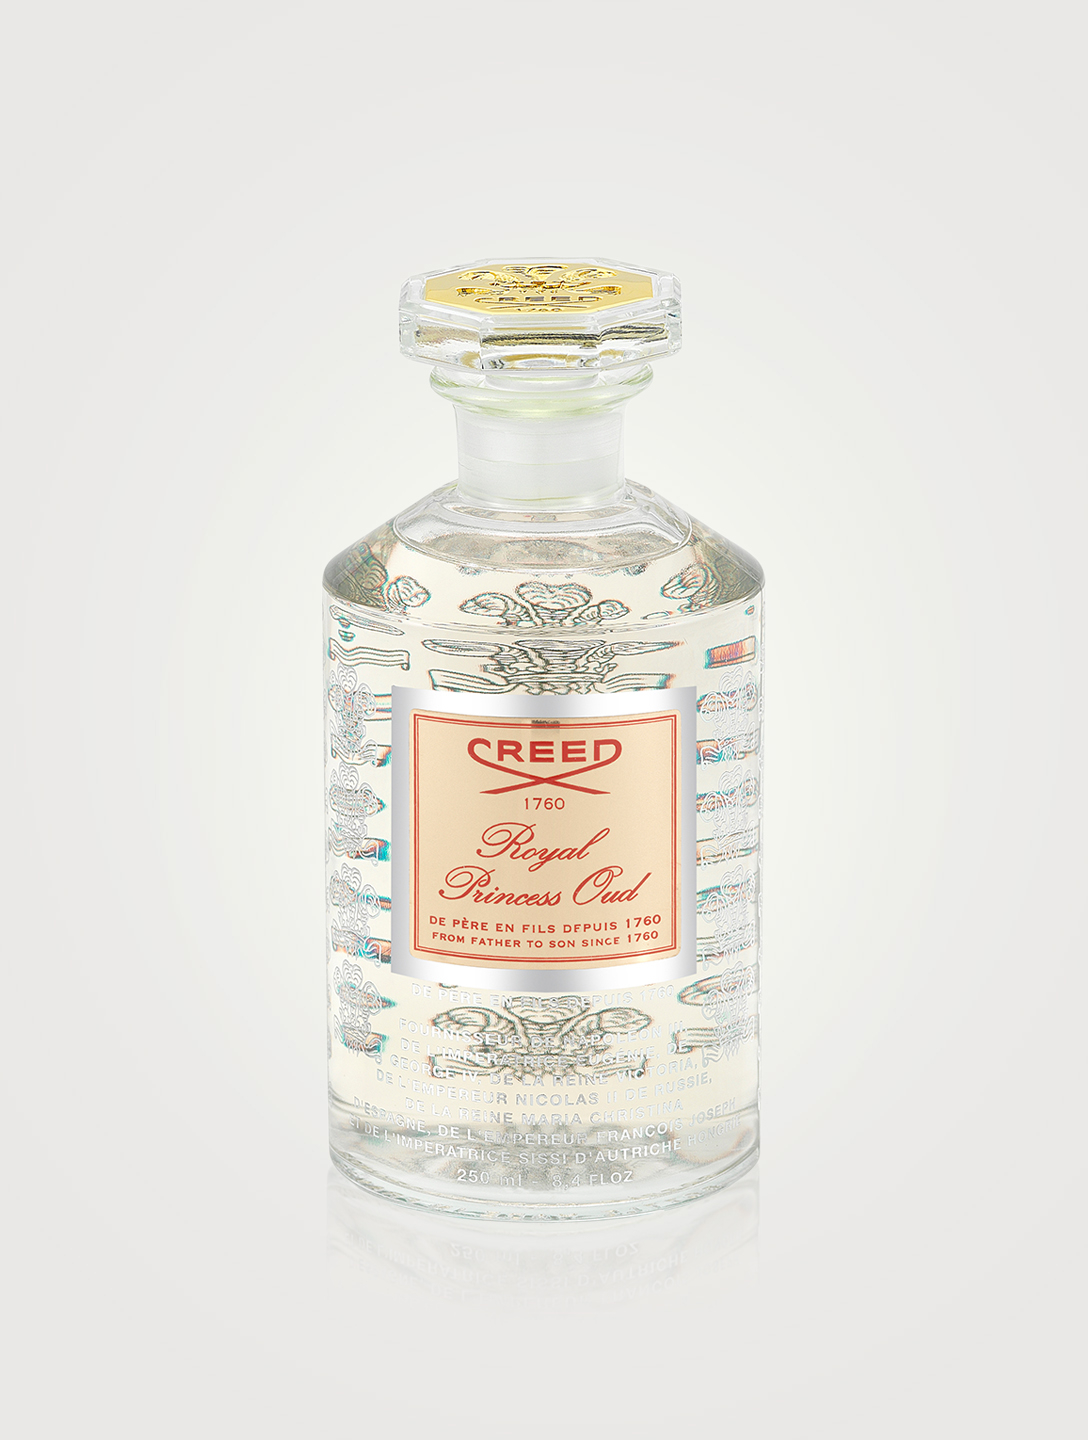 CREED Eau de parfum Royal Princess Oud Beauté